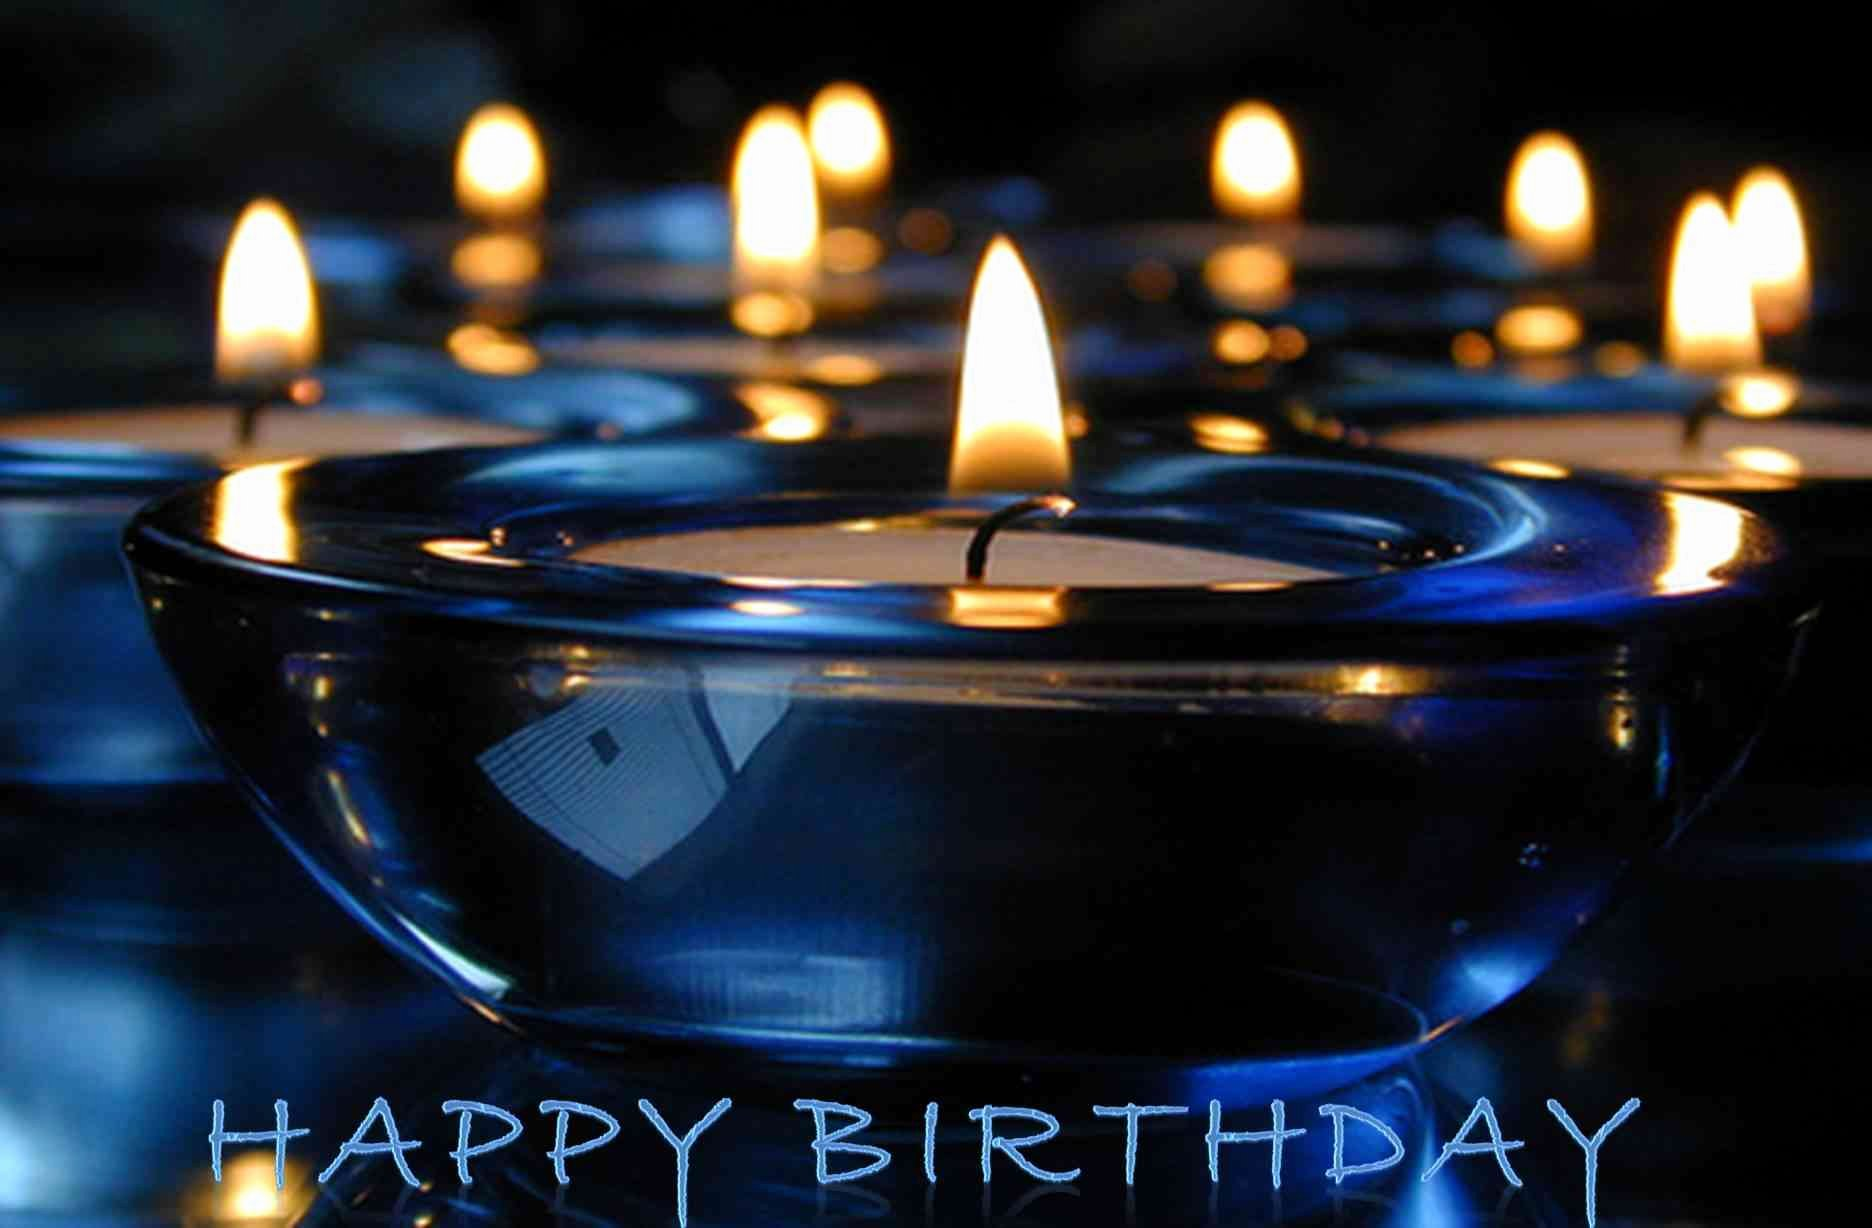 Free Downloads Happy Birthday Images Awesome Happy Birthday Wishes Hd Wallpapers & S